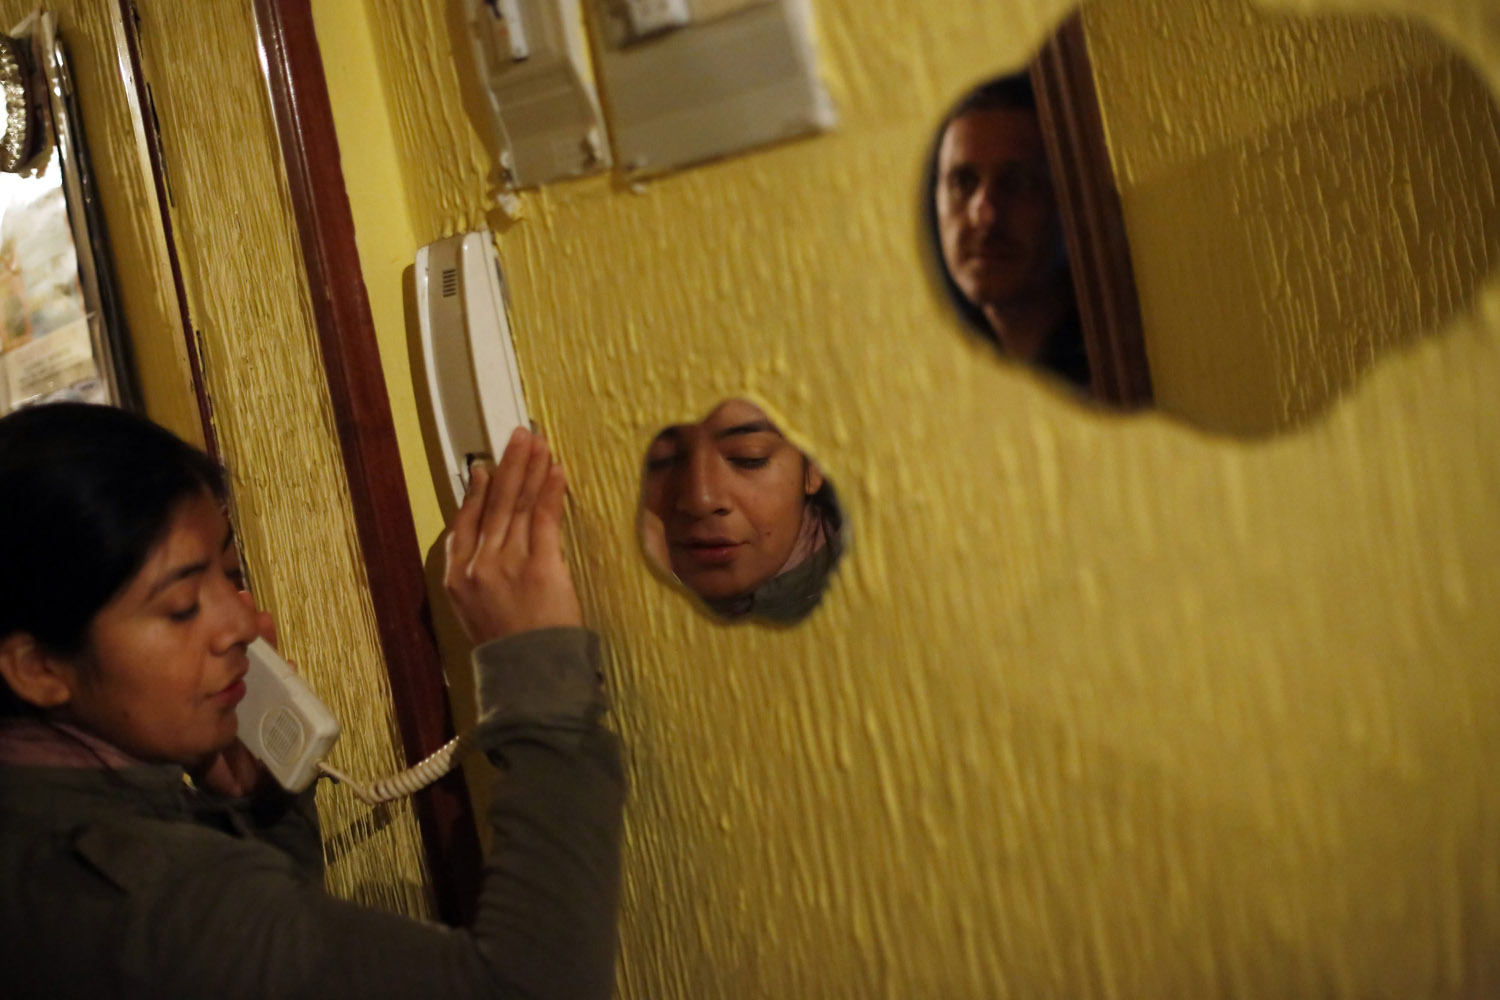 Oct. 8, 2013. Maira Jumbo, who holds dual citizenship in Spain and Ecuador, answers a phone call before learning that her family's eviction had been suspended, at her home in Madrid.